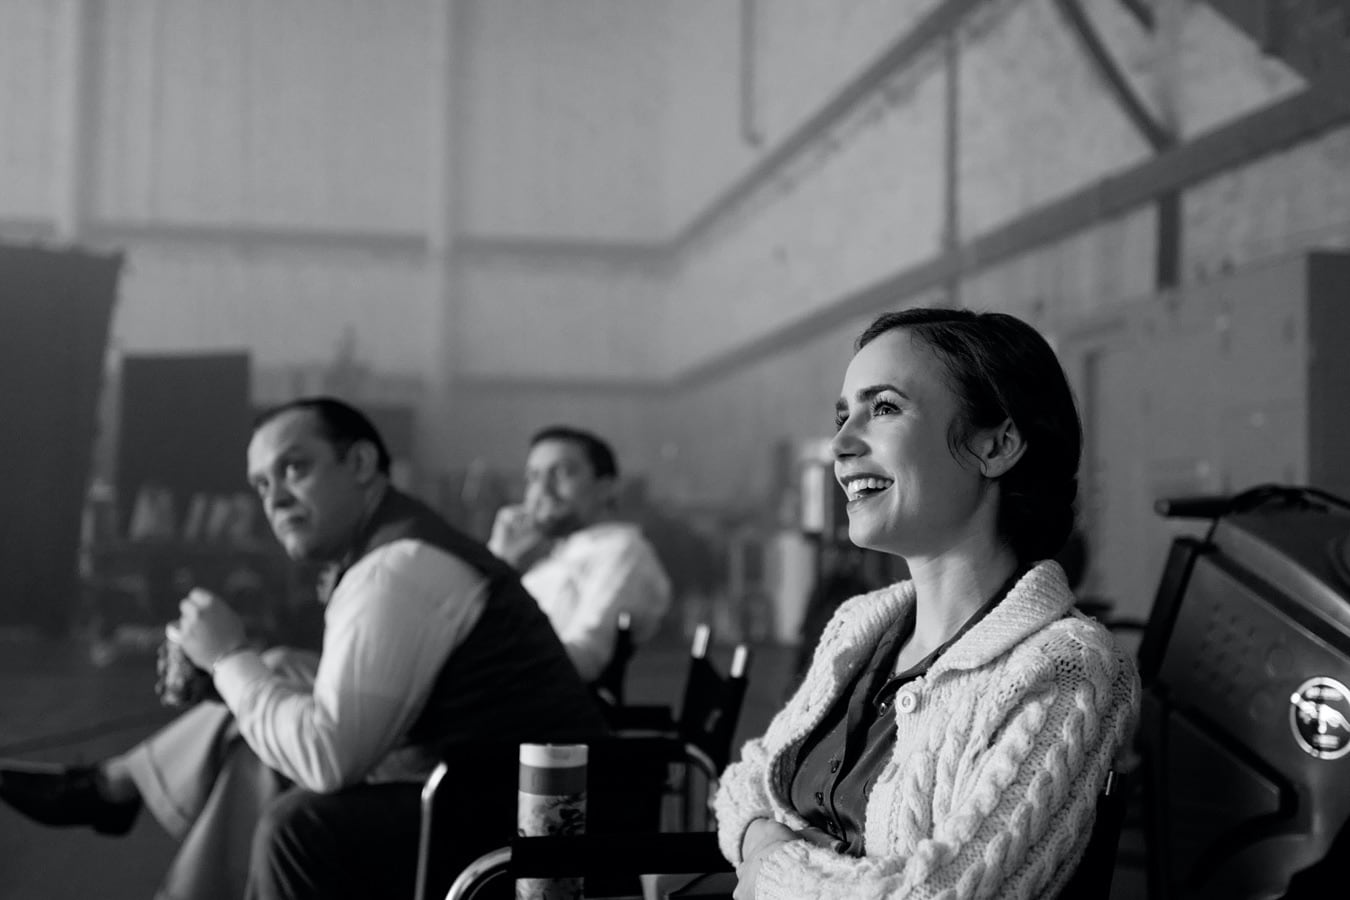 Lily Collins enjoys a moment on the set of Mank. Who's that way in the back? It must be Orson Welles himself!